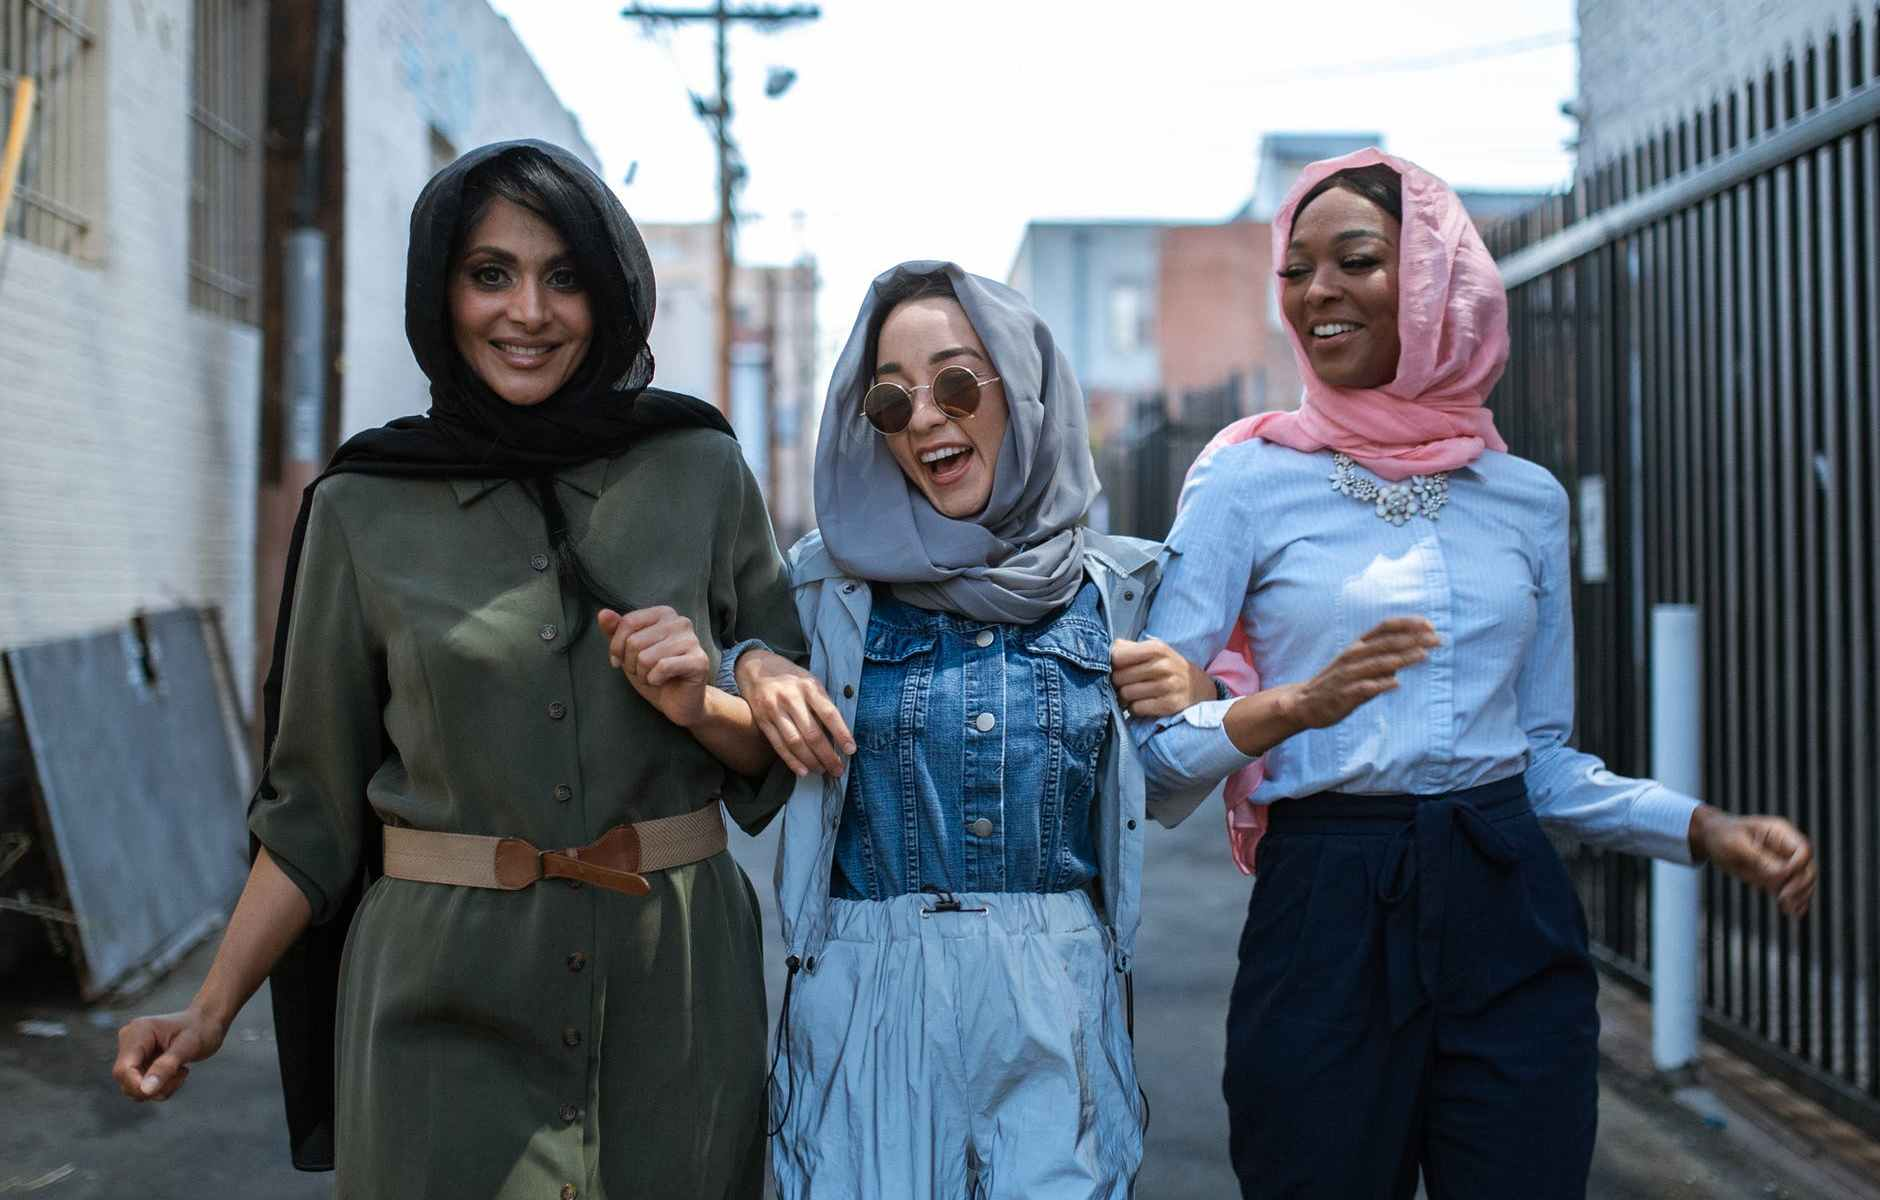 joyful multiethnic women in headscarves walking on street